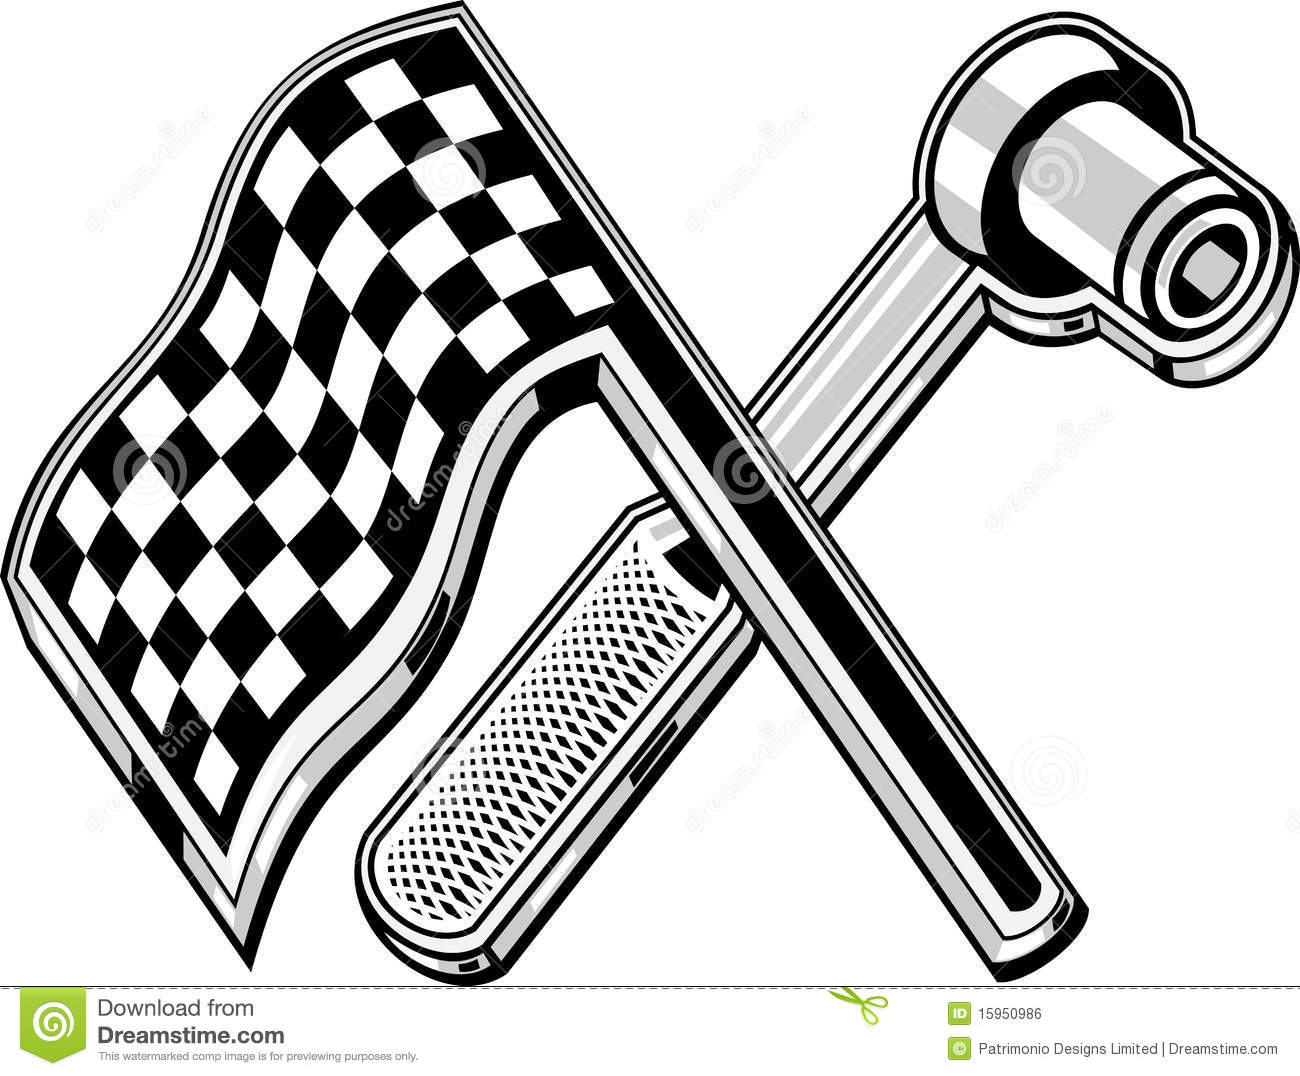 Illustration Of A Checkered Flag With Socket Wrench Crossed